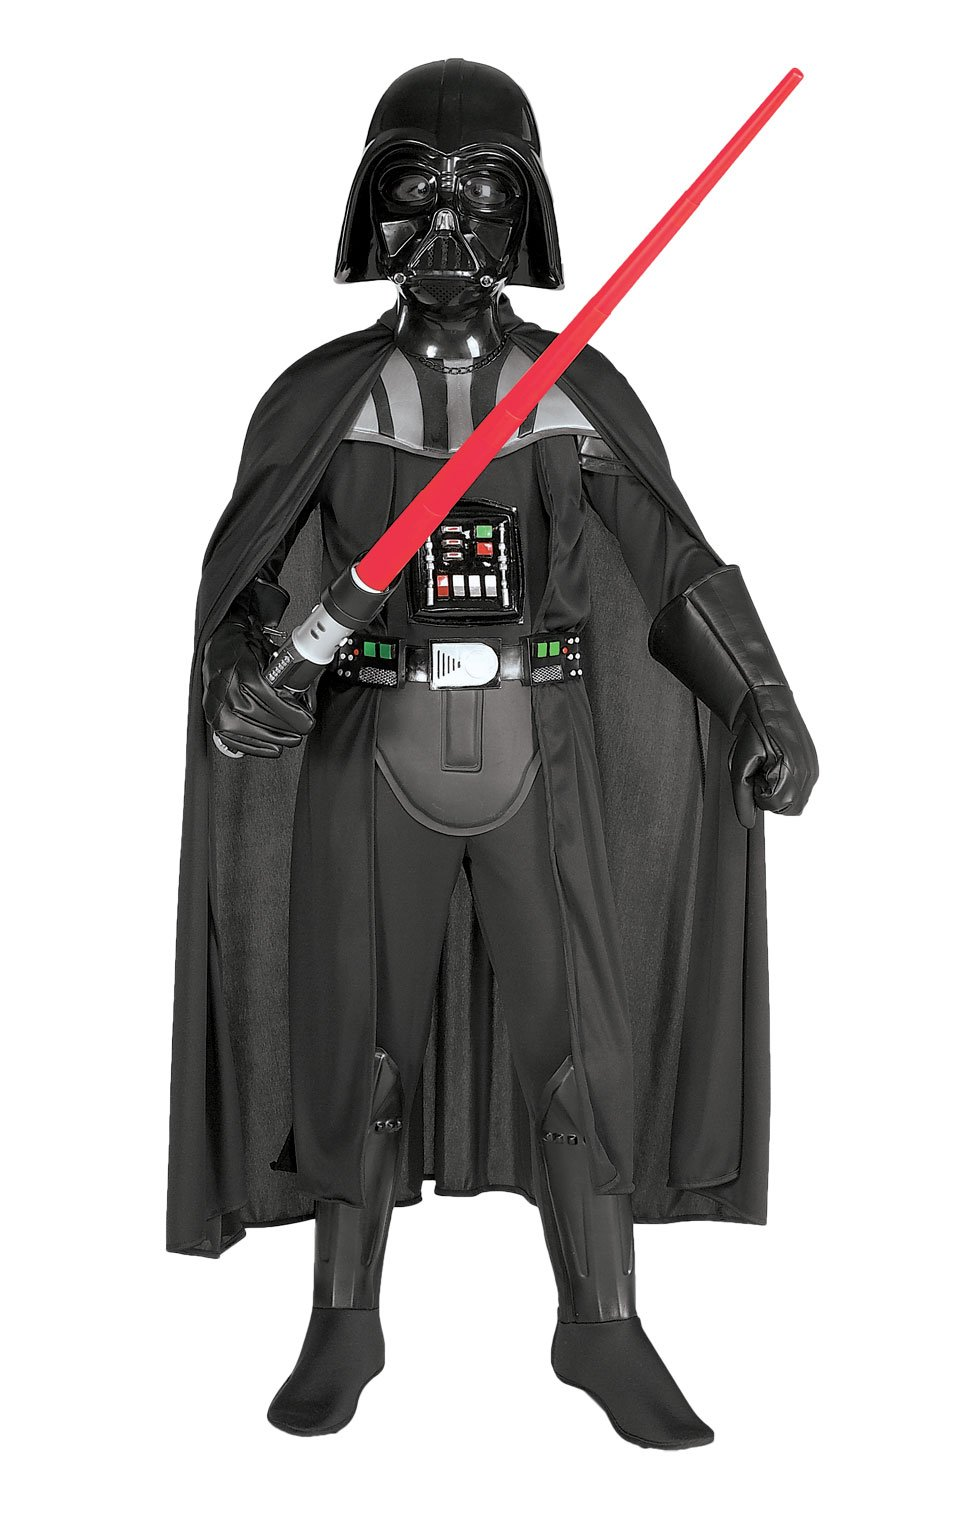 Costumes USA Star Wars Darth Vader Costume Supreme for Boys Includes a Jumpsuit a Mask and More a Cape